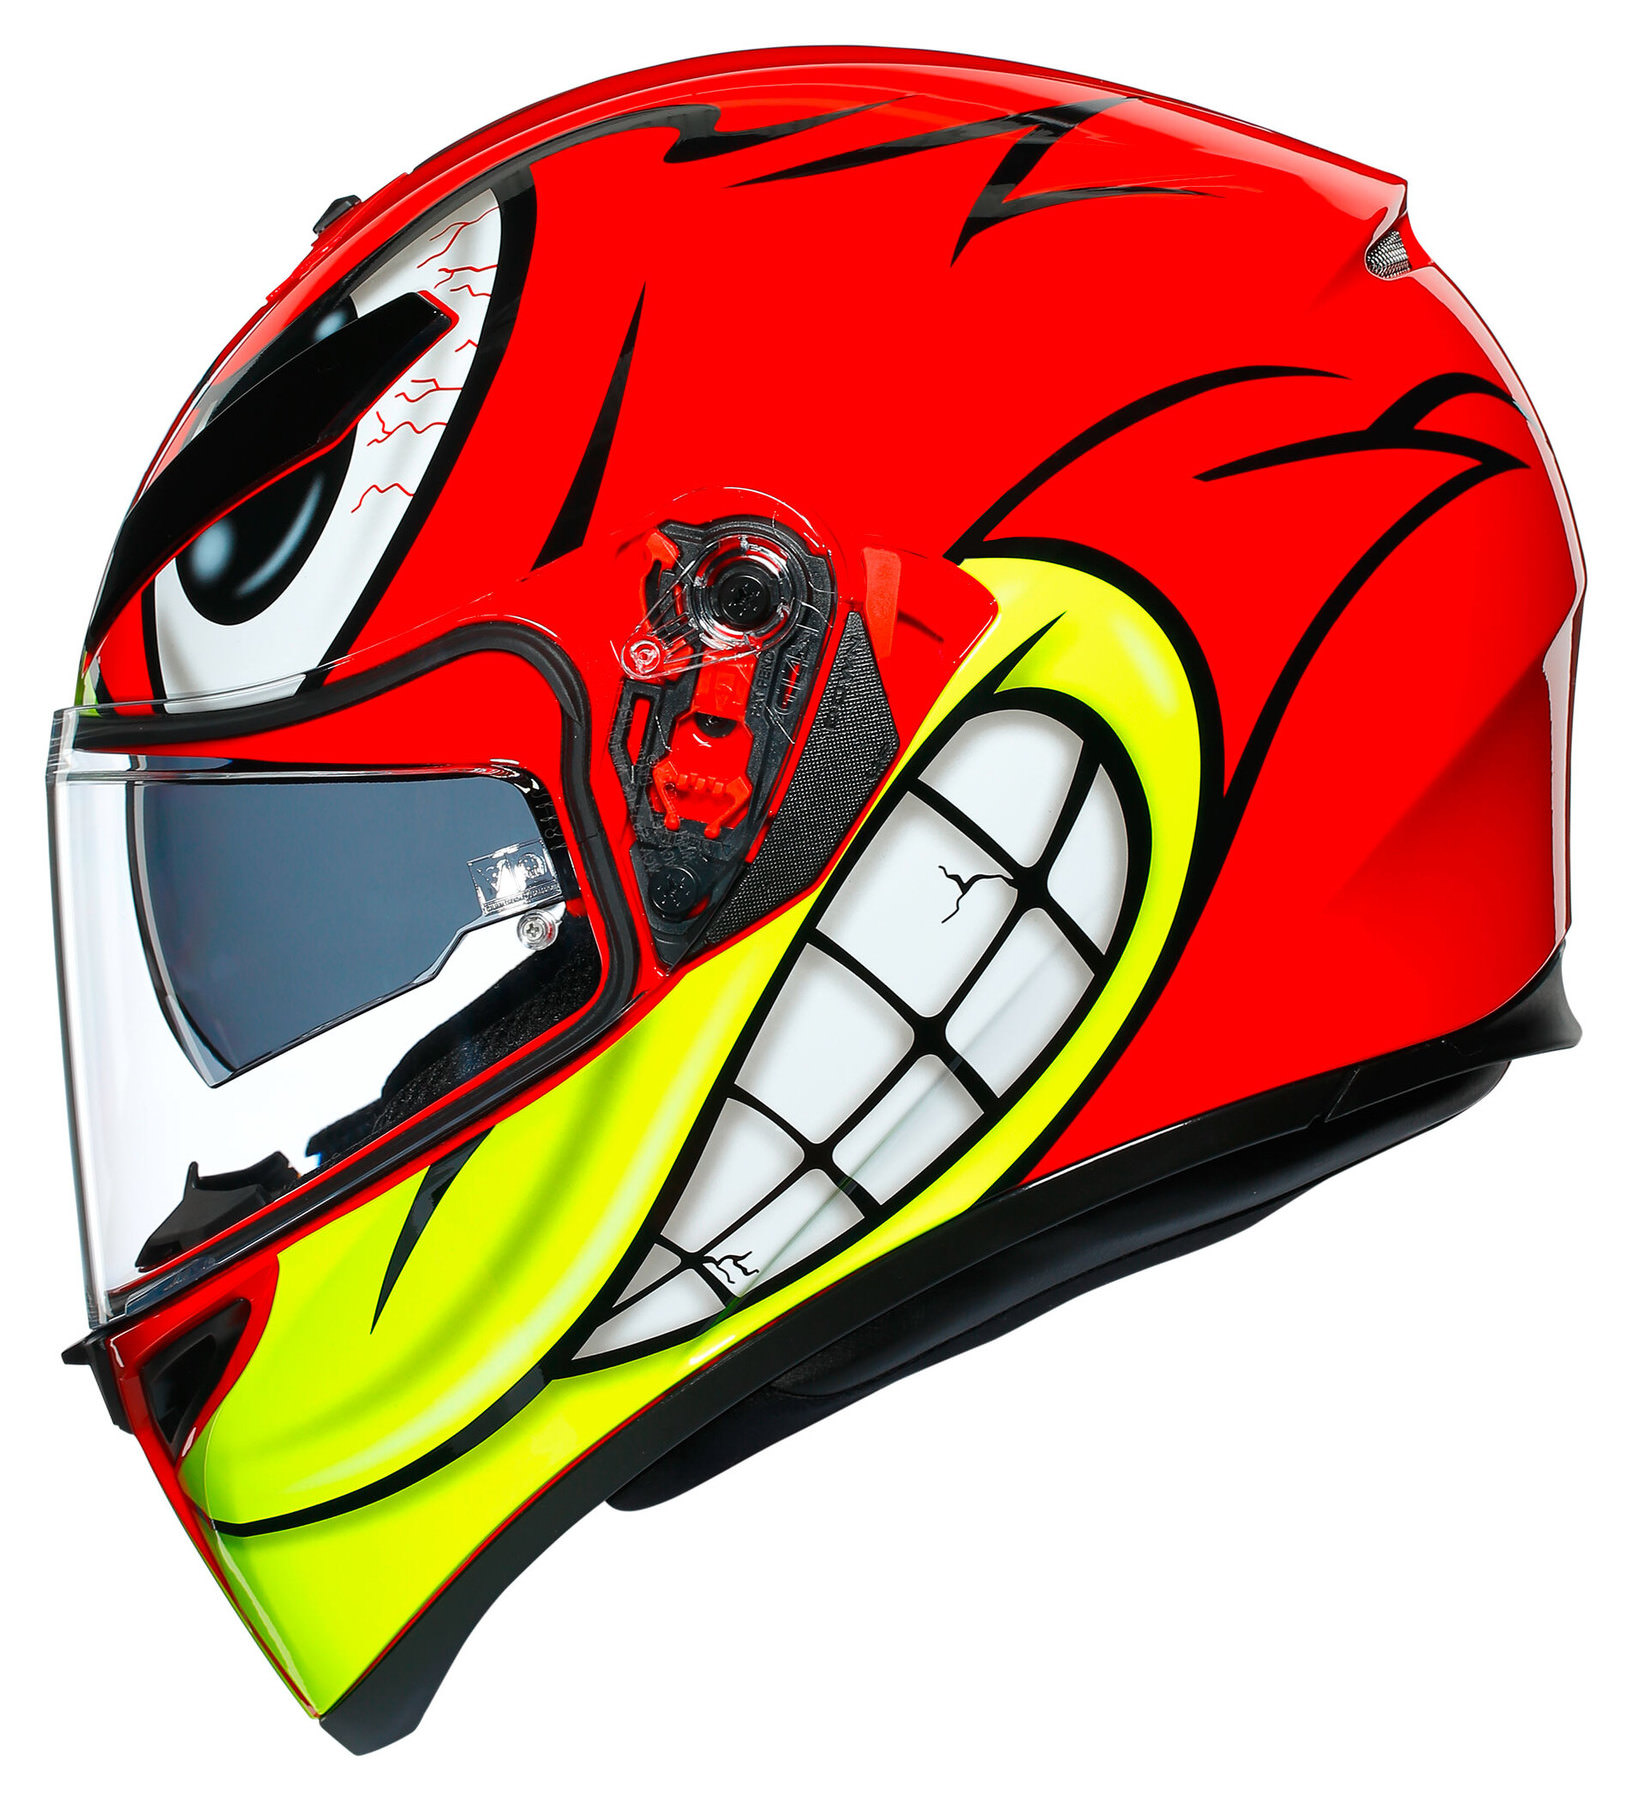 Buy Agv K3 Sv Birdy Full Face Helmet Louis Motorcycle Clothing And Technology